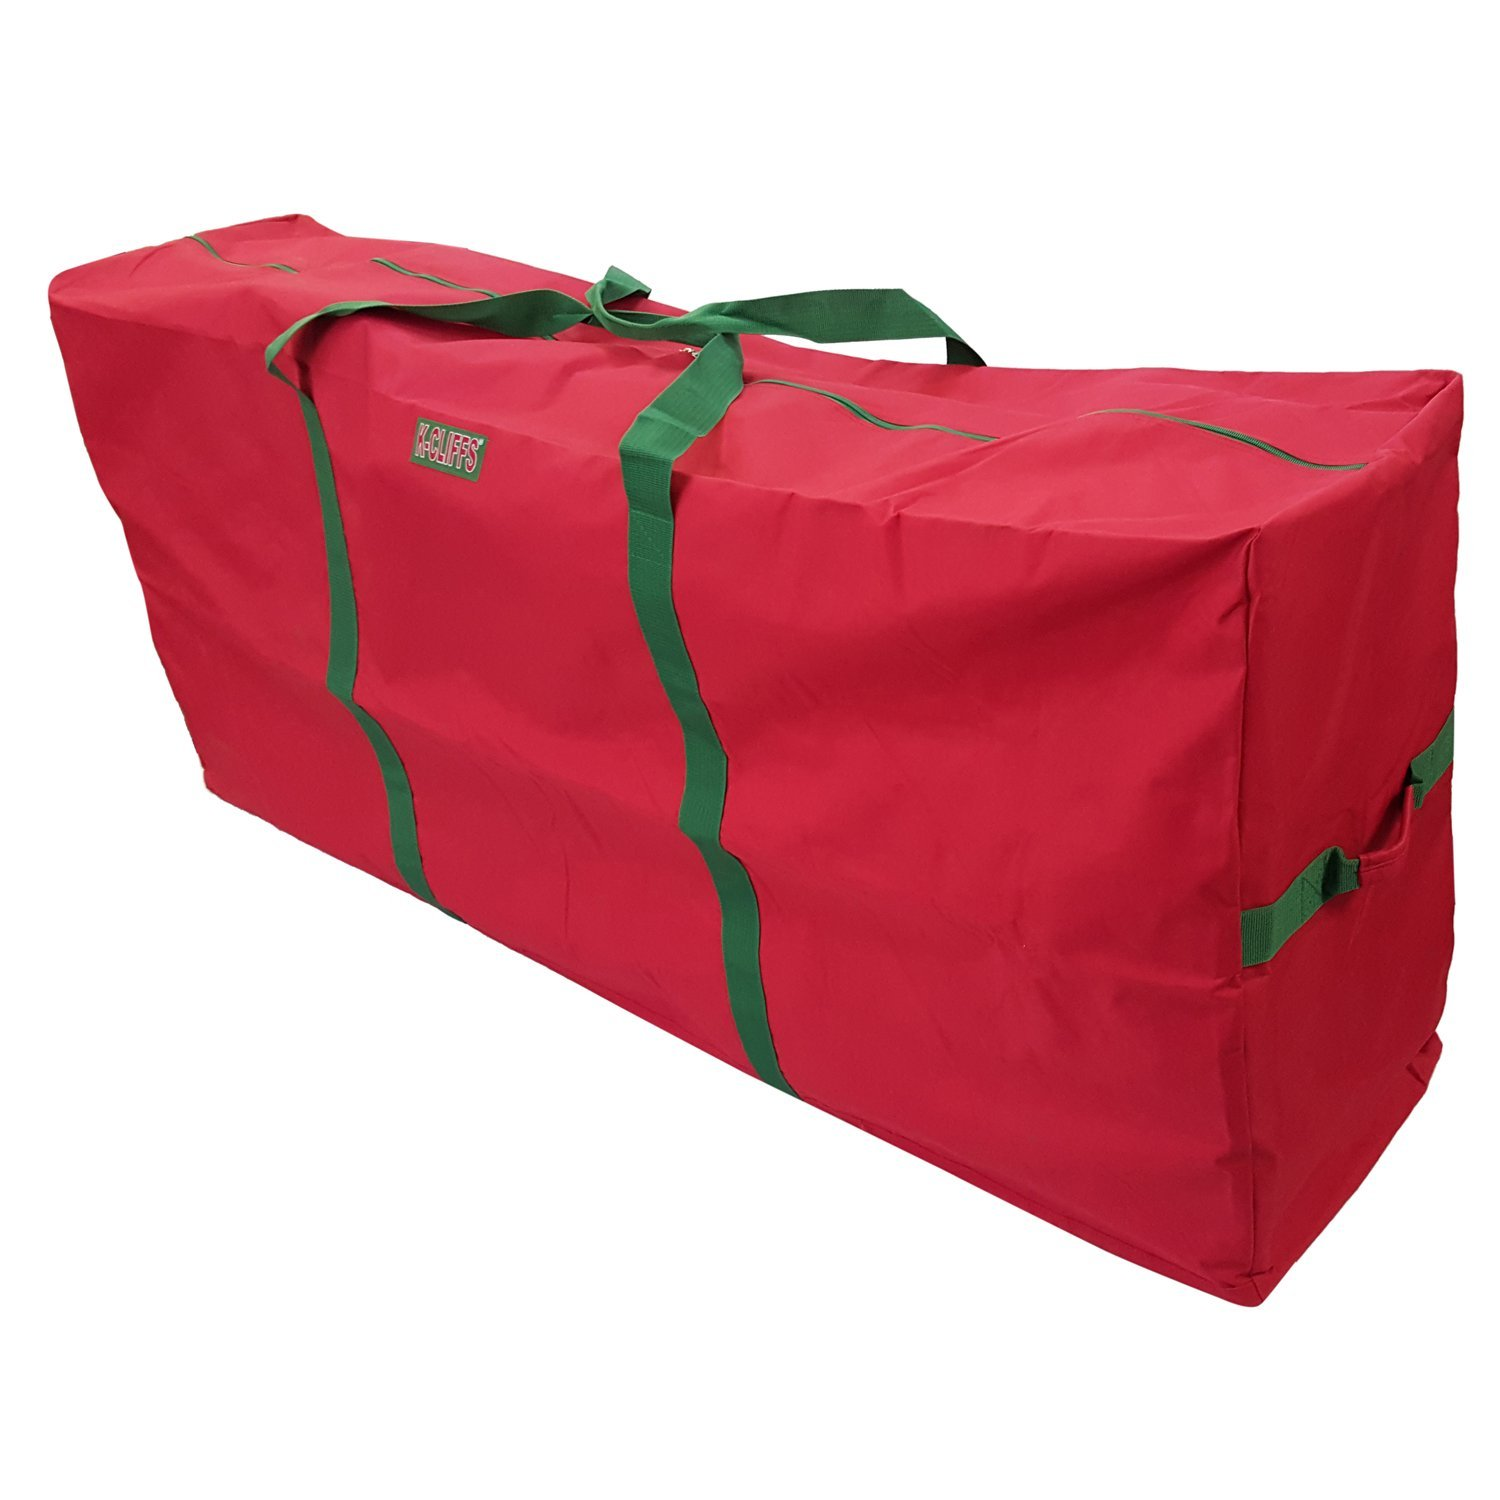 Heavy Duty Christmas Tree Storage Bag Fit Upto 6 Foot Artificial Holiday Red Extra Large 48 X15 X20